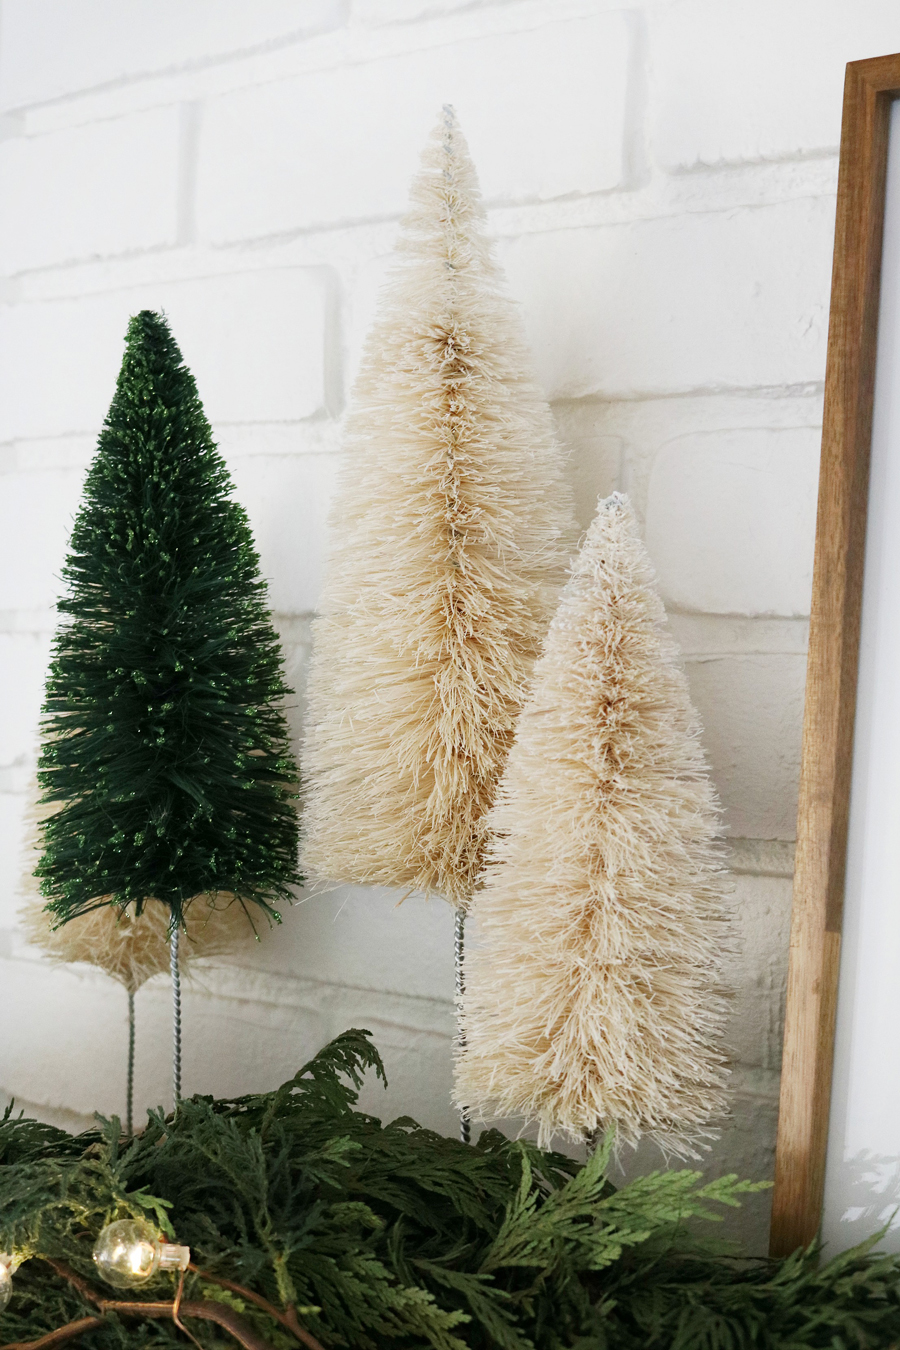 Modern Bottle Brush Trees for a Cozy Holiday Look